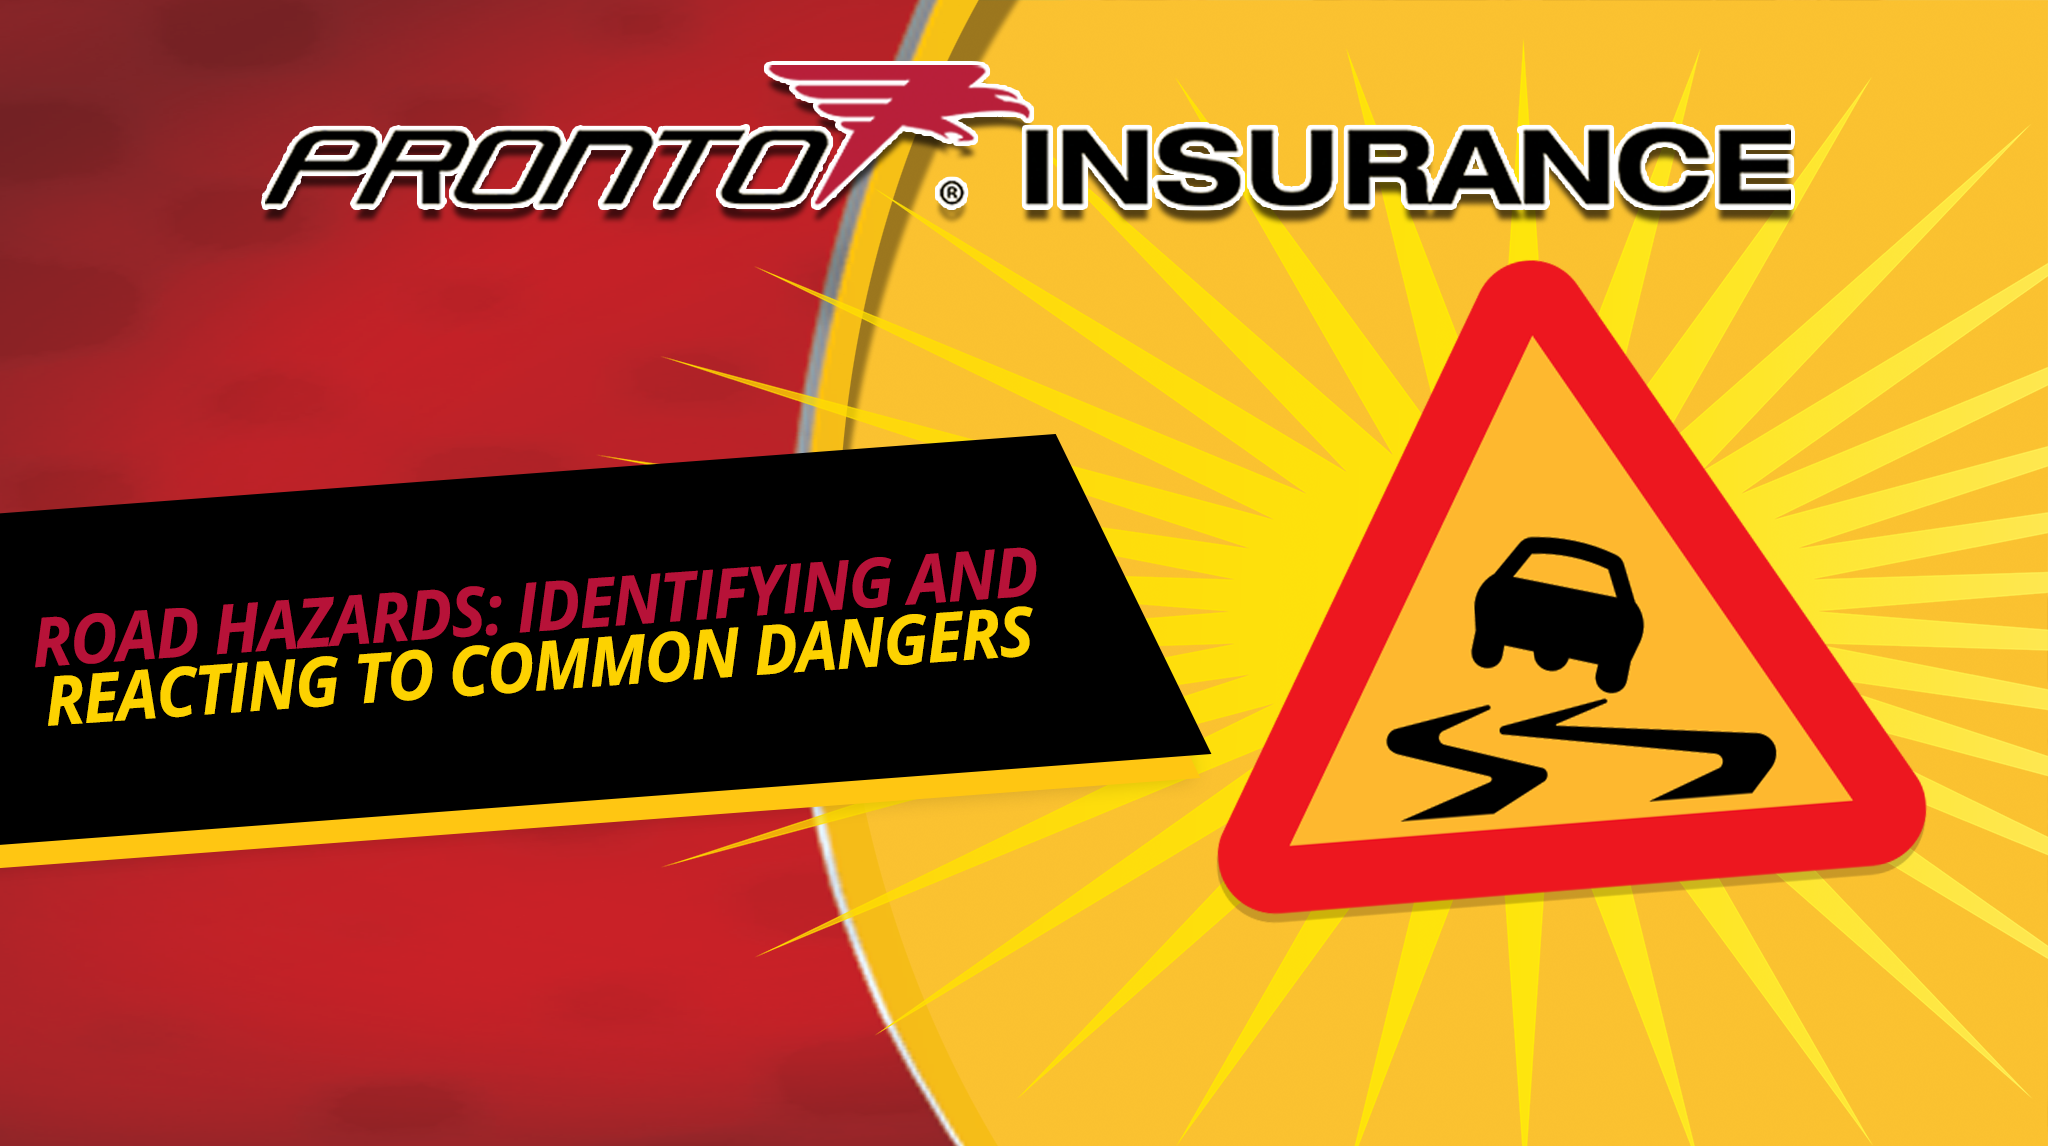 Road Hazards: Identifying and Reacting to Common Dangers